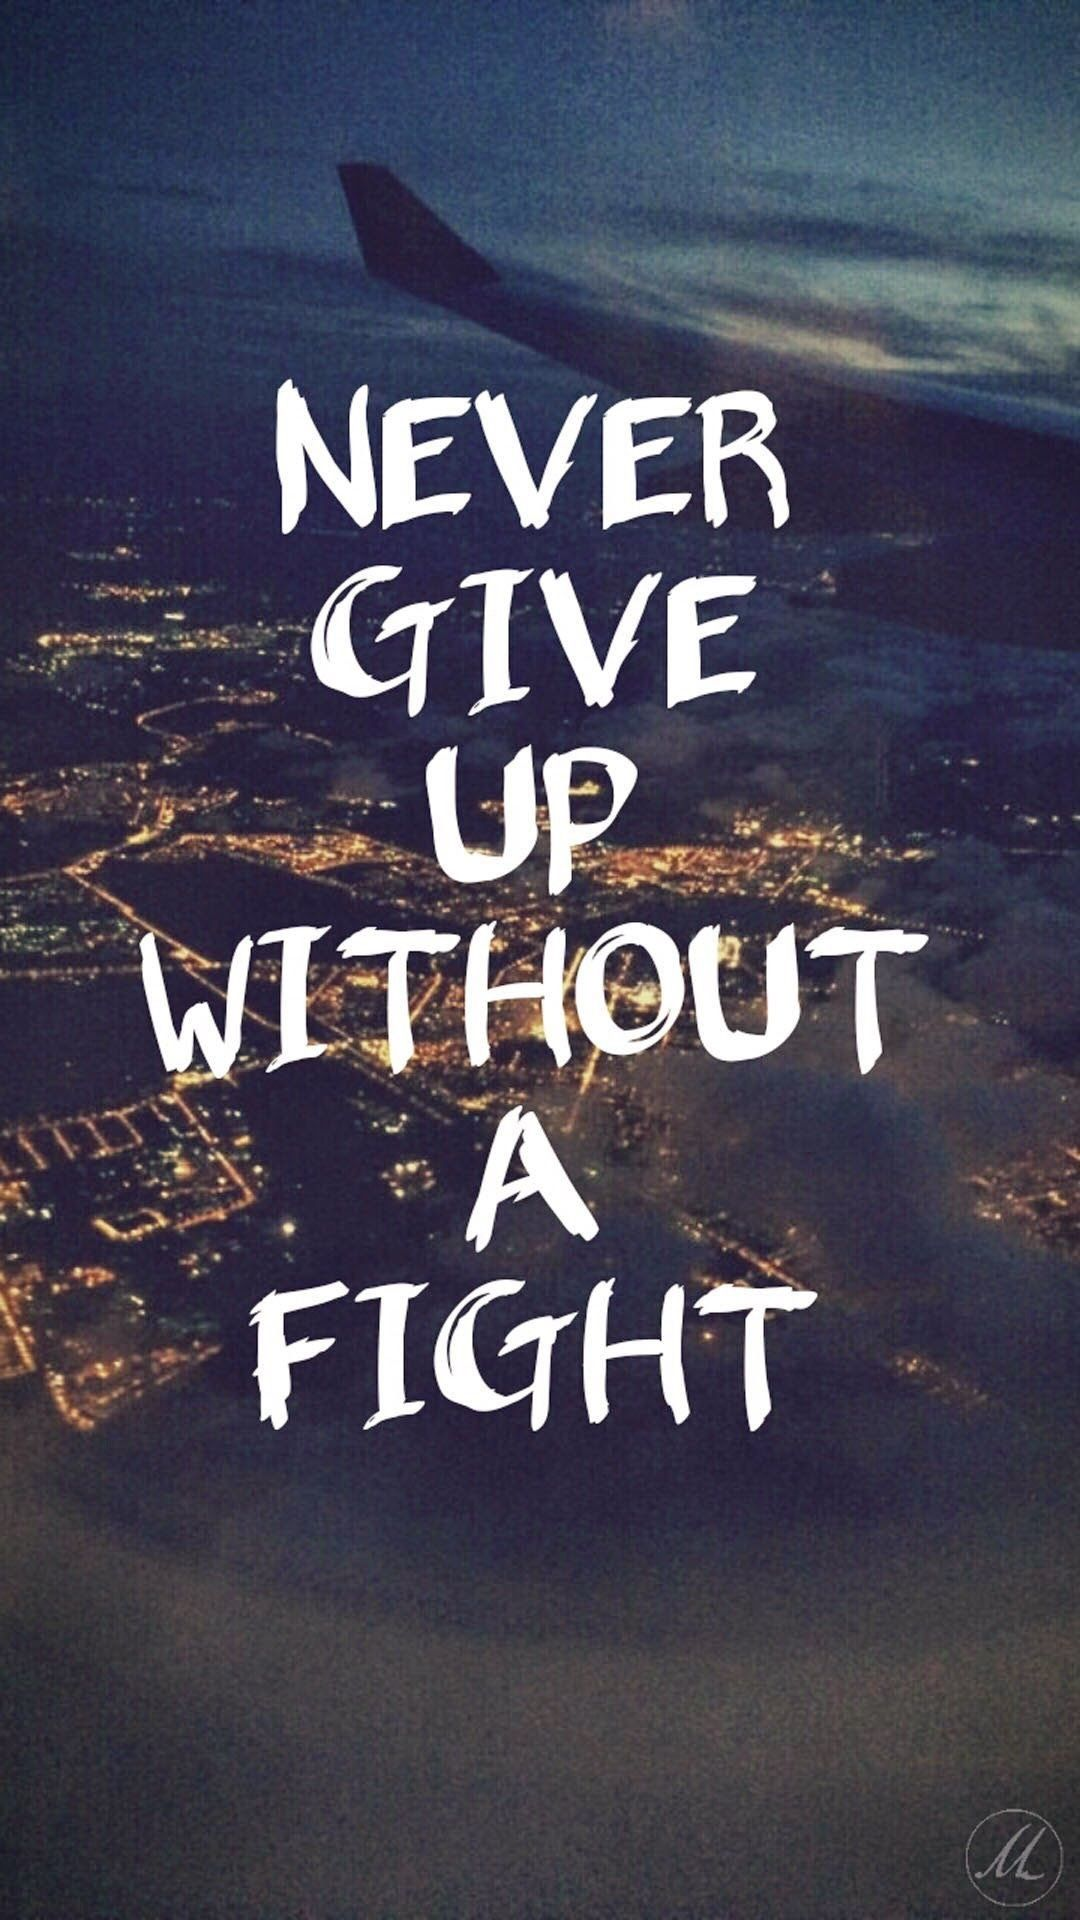 1080x1920 80+ Quotes Iphone Wallpapers on WallpaperPlay